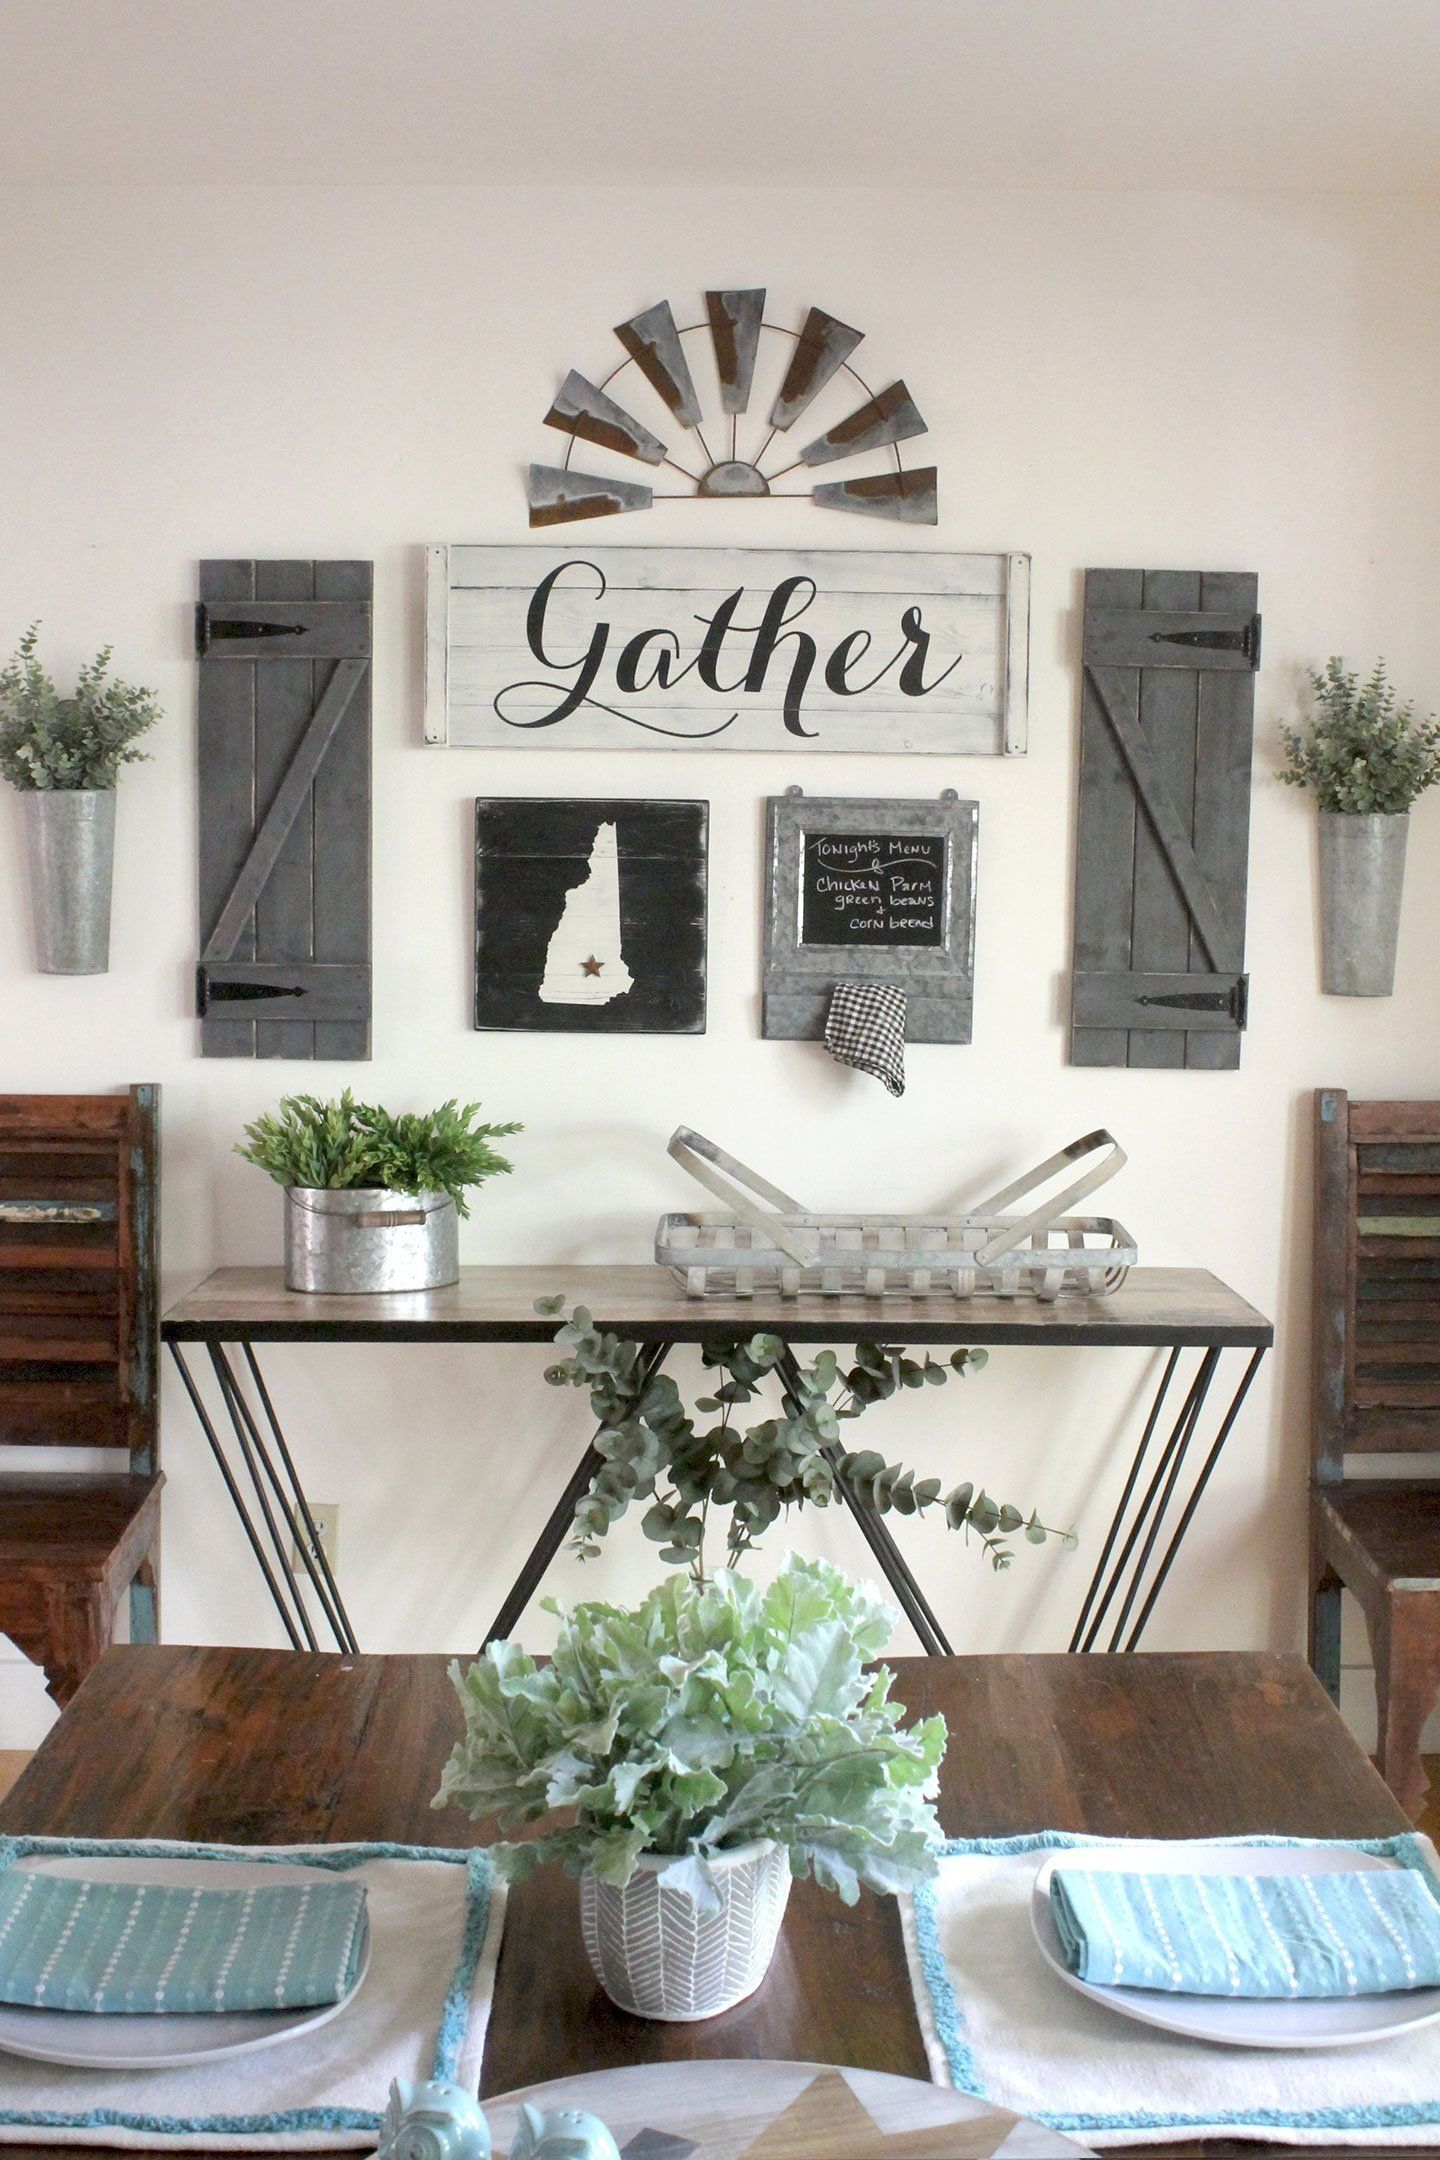 Gather sign set 38 pcs gallery wall set dining room